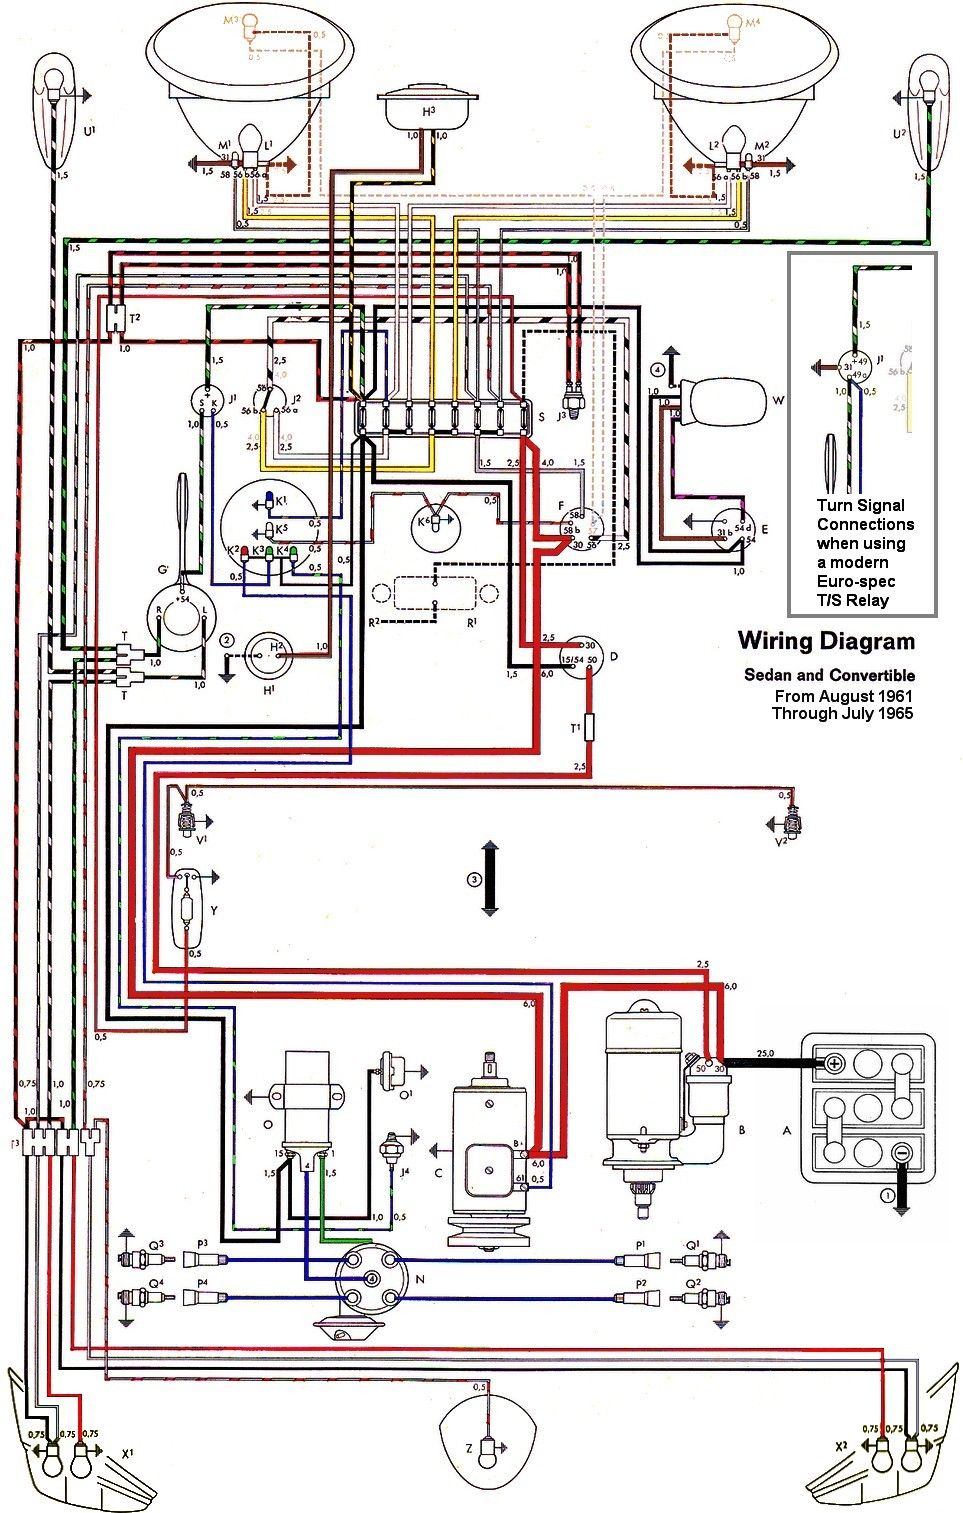 wiring diagram vw beetle sedan and convertible 1961 1965 vw vw vw beetle harness vw beetle wiring [ 963 x 1513 Pixel ]